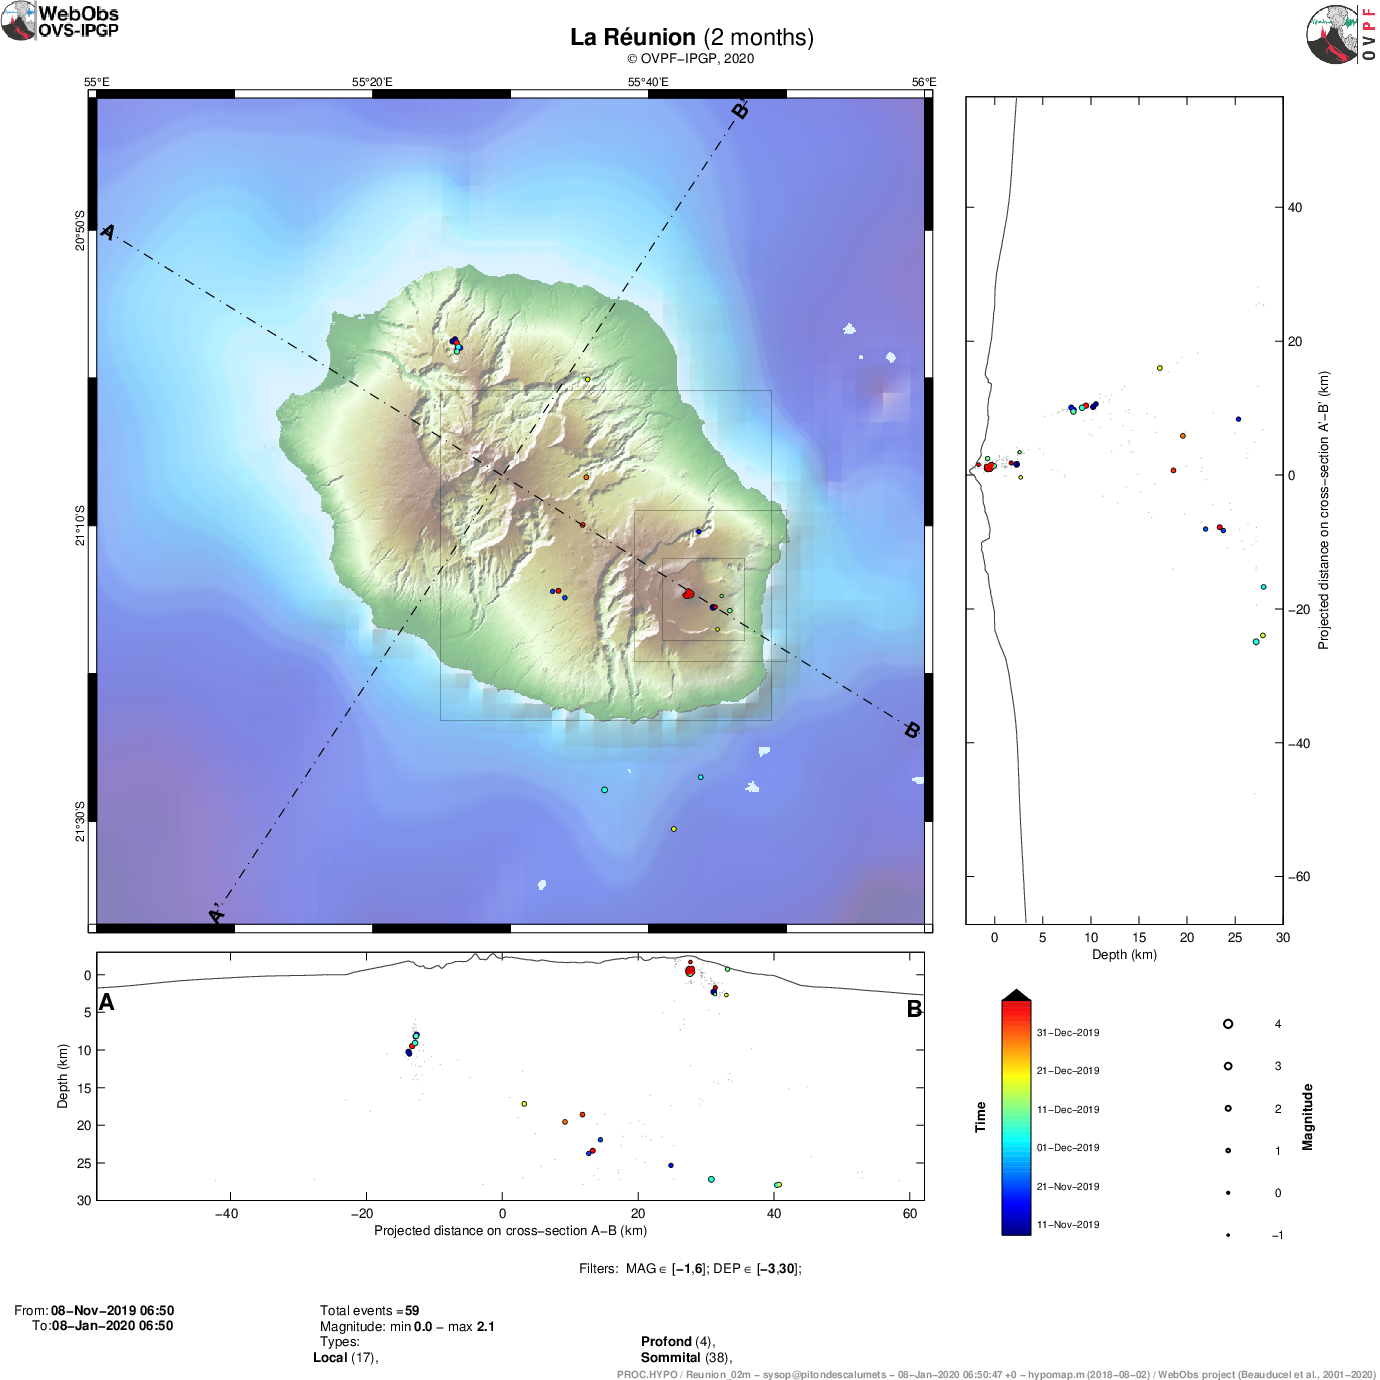 Piton de La Fournaise - 08.01.2020 - Location map (epicenters) and North-South and East-West sections (showing the location in depth, hypocentres) of earthquakes recorded and located by the OVPF-IPGP over 2 months in Reunion . Only localizable earthquakes have been represented on the map. - Doc. OVPF